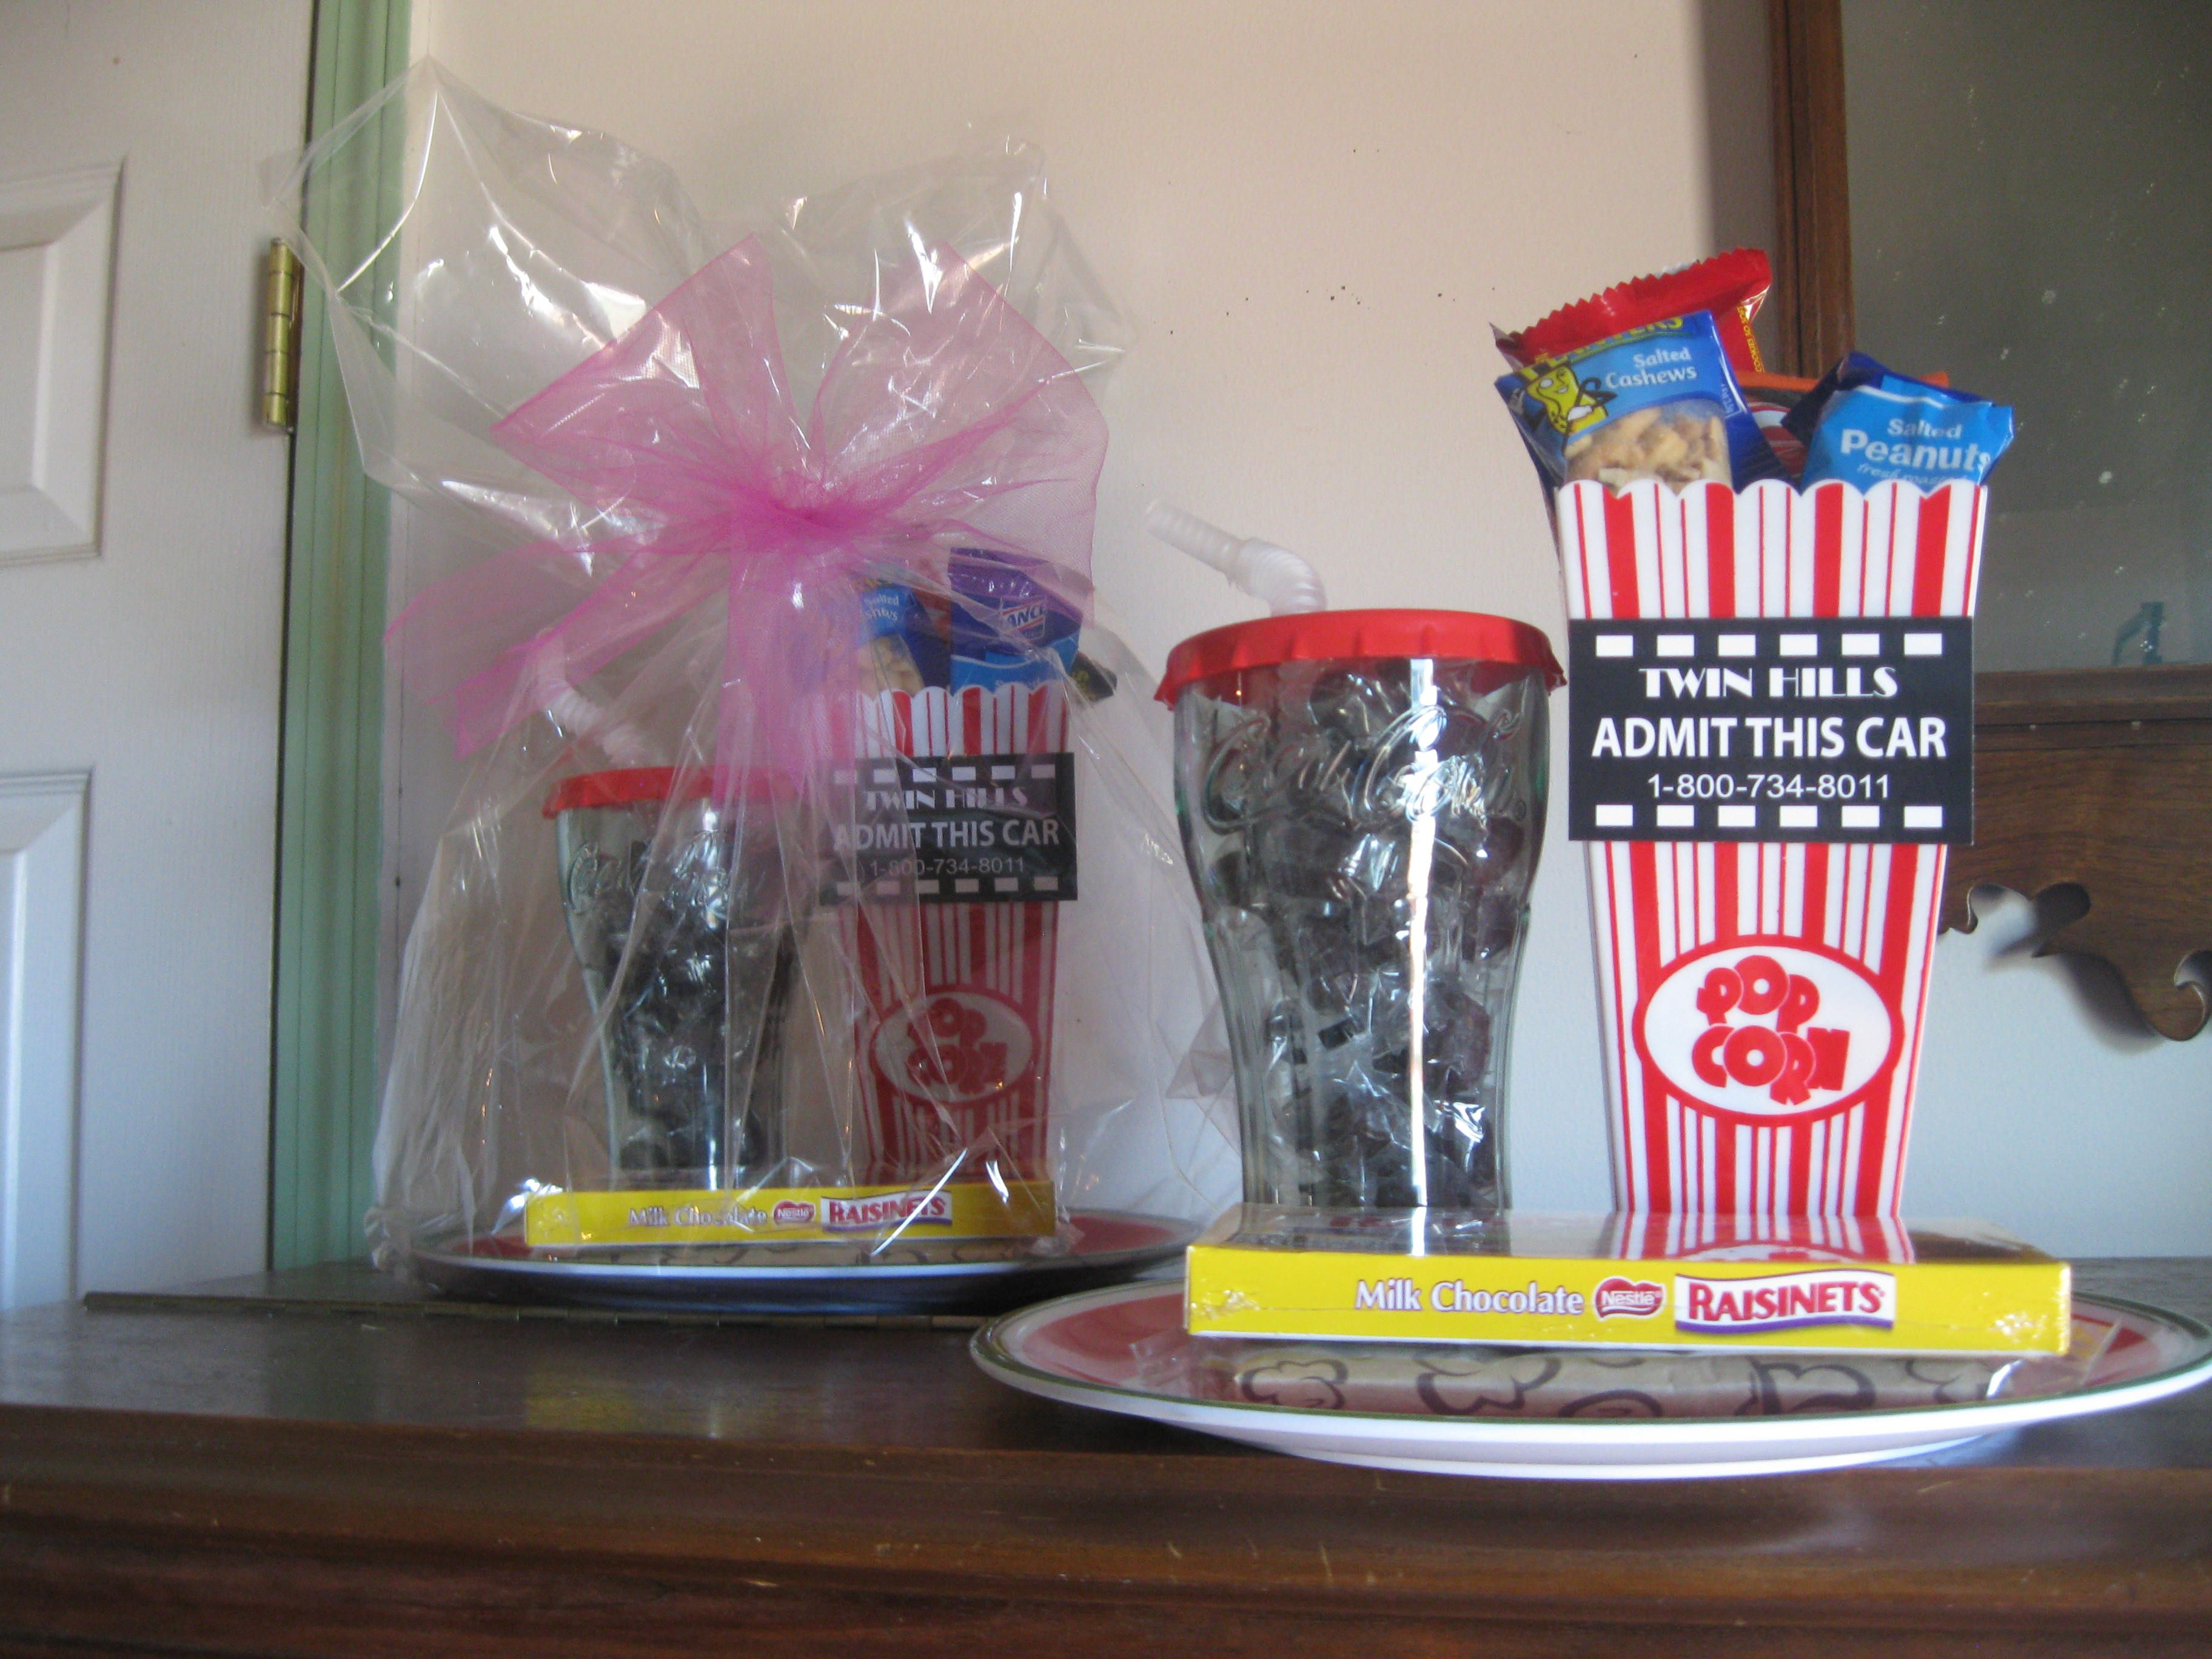 coca-cola plate with a coca-cola cup filled with root beer hard candy...a popcorn box with assorted mini candies, cookies, peanuts, and combos....a bag of microwave popcorn and large box of raisinettes in front...and a free pass to the drive-in or movie theater.